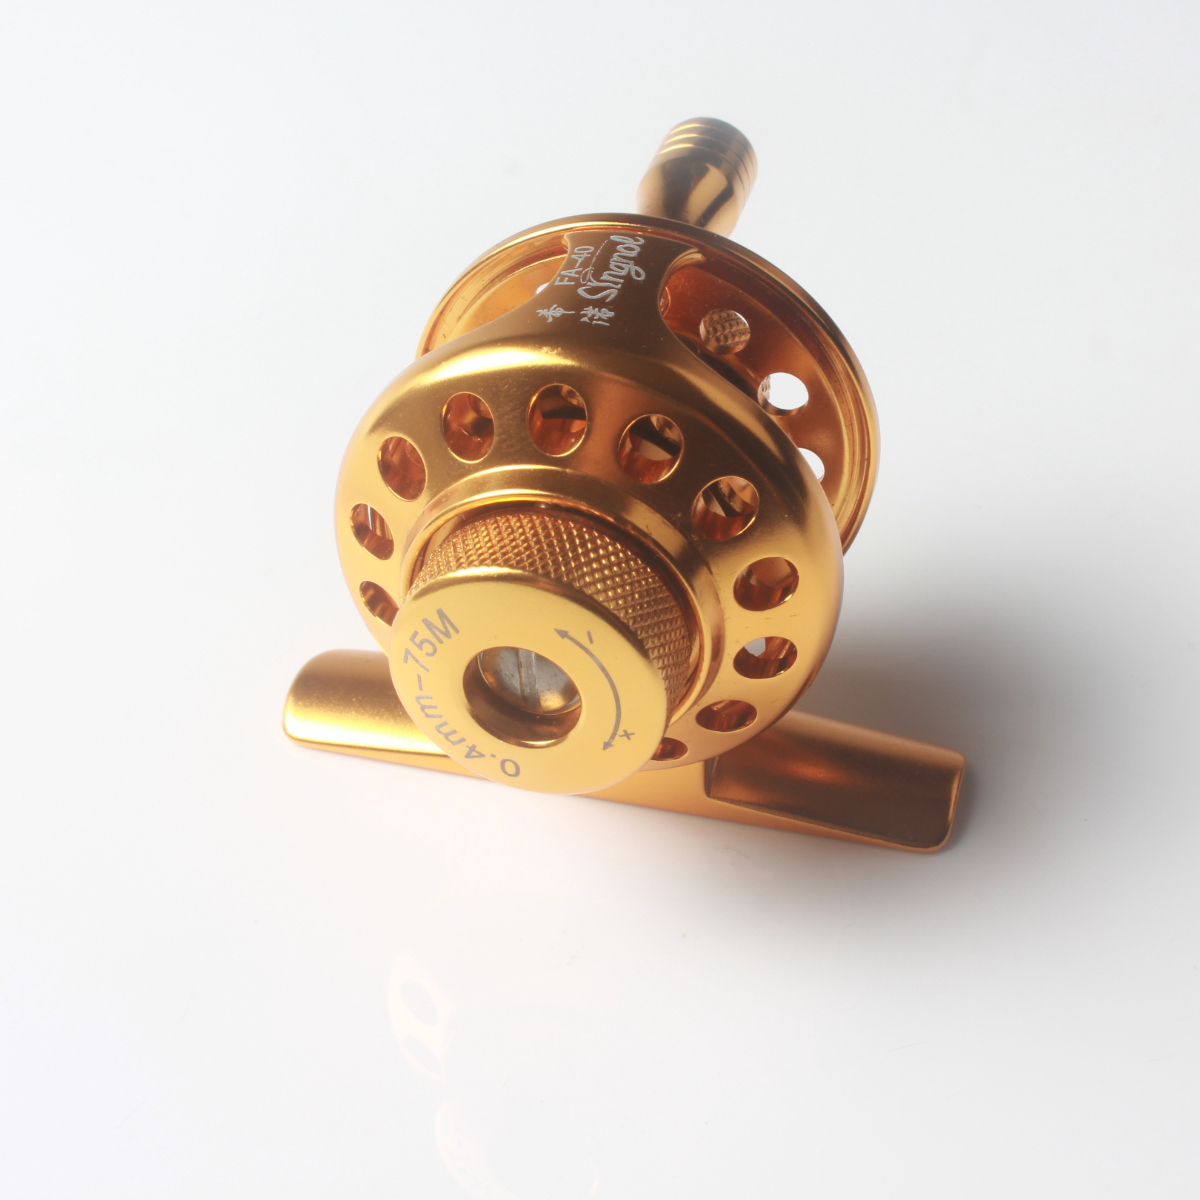 FA40 CNC Aluminum Frame and Spool One-way Ball Bearing Fly Fishing Reel Tackle